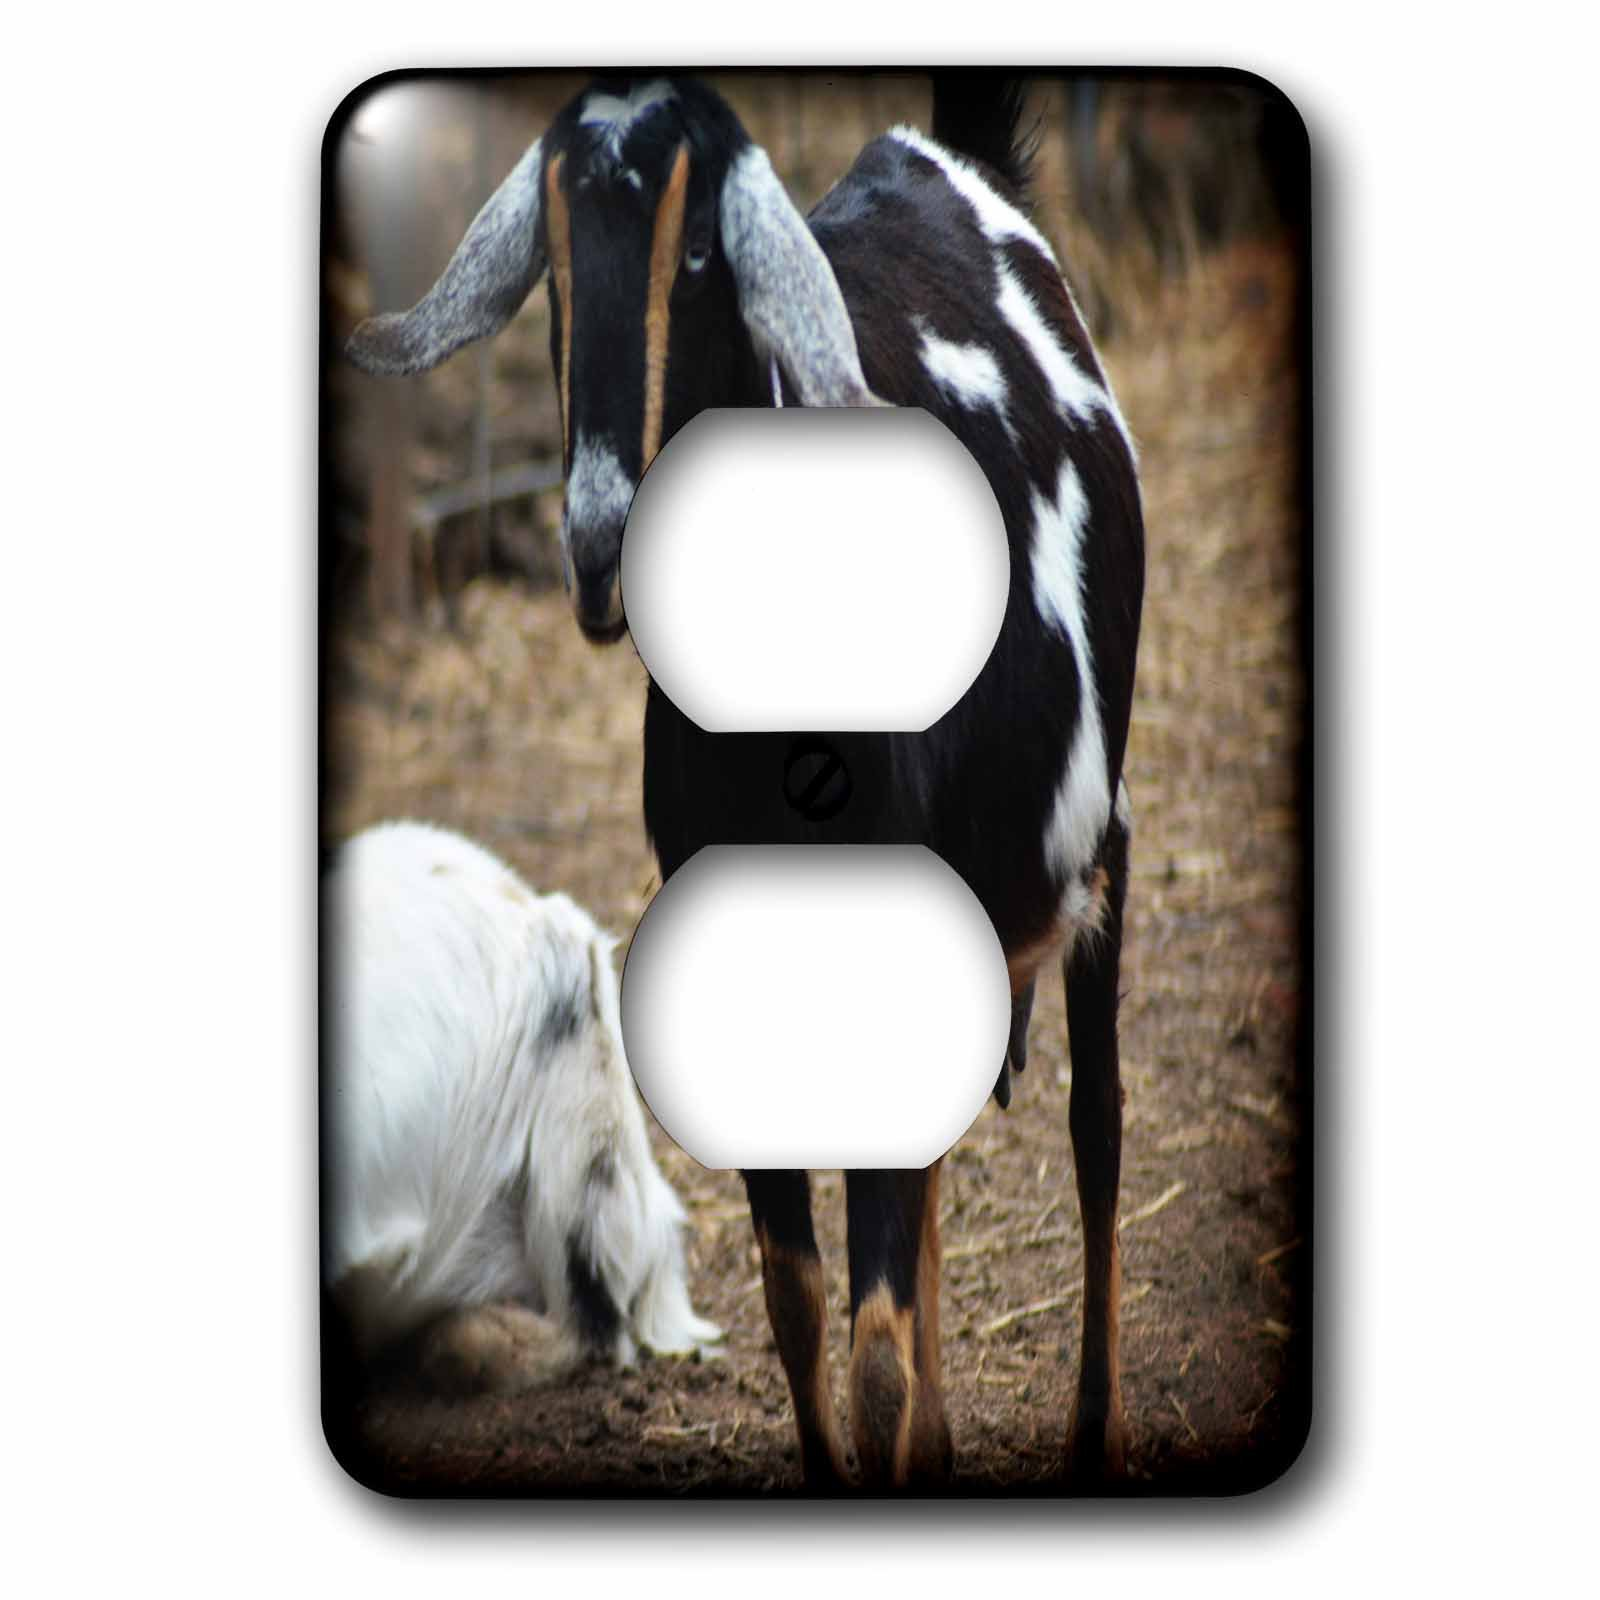 3dRose WhiteOaks Photography and Artwork - Goats - Black Goat with Brown is a photo of a beautiful colored goat - Light Switch Covers - 2 plug outlet cover (lsp_265340_6)